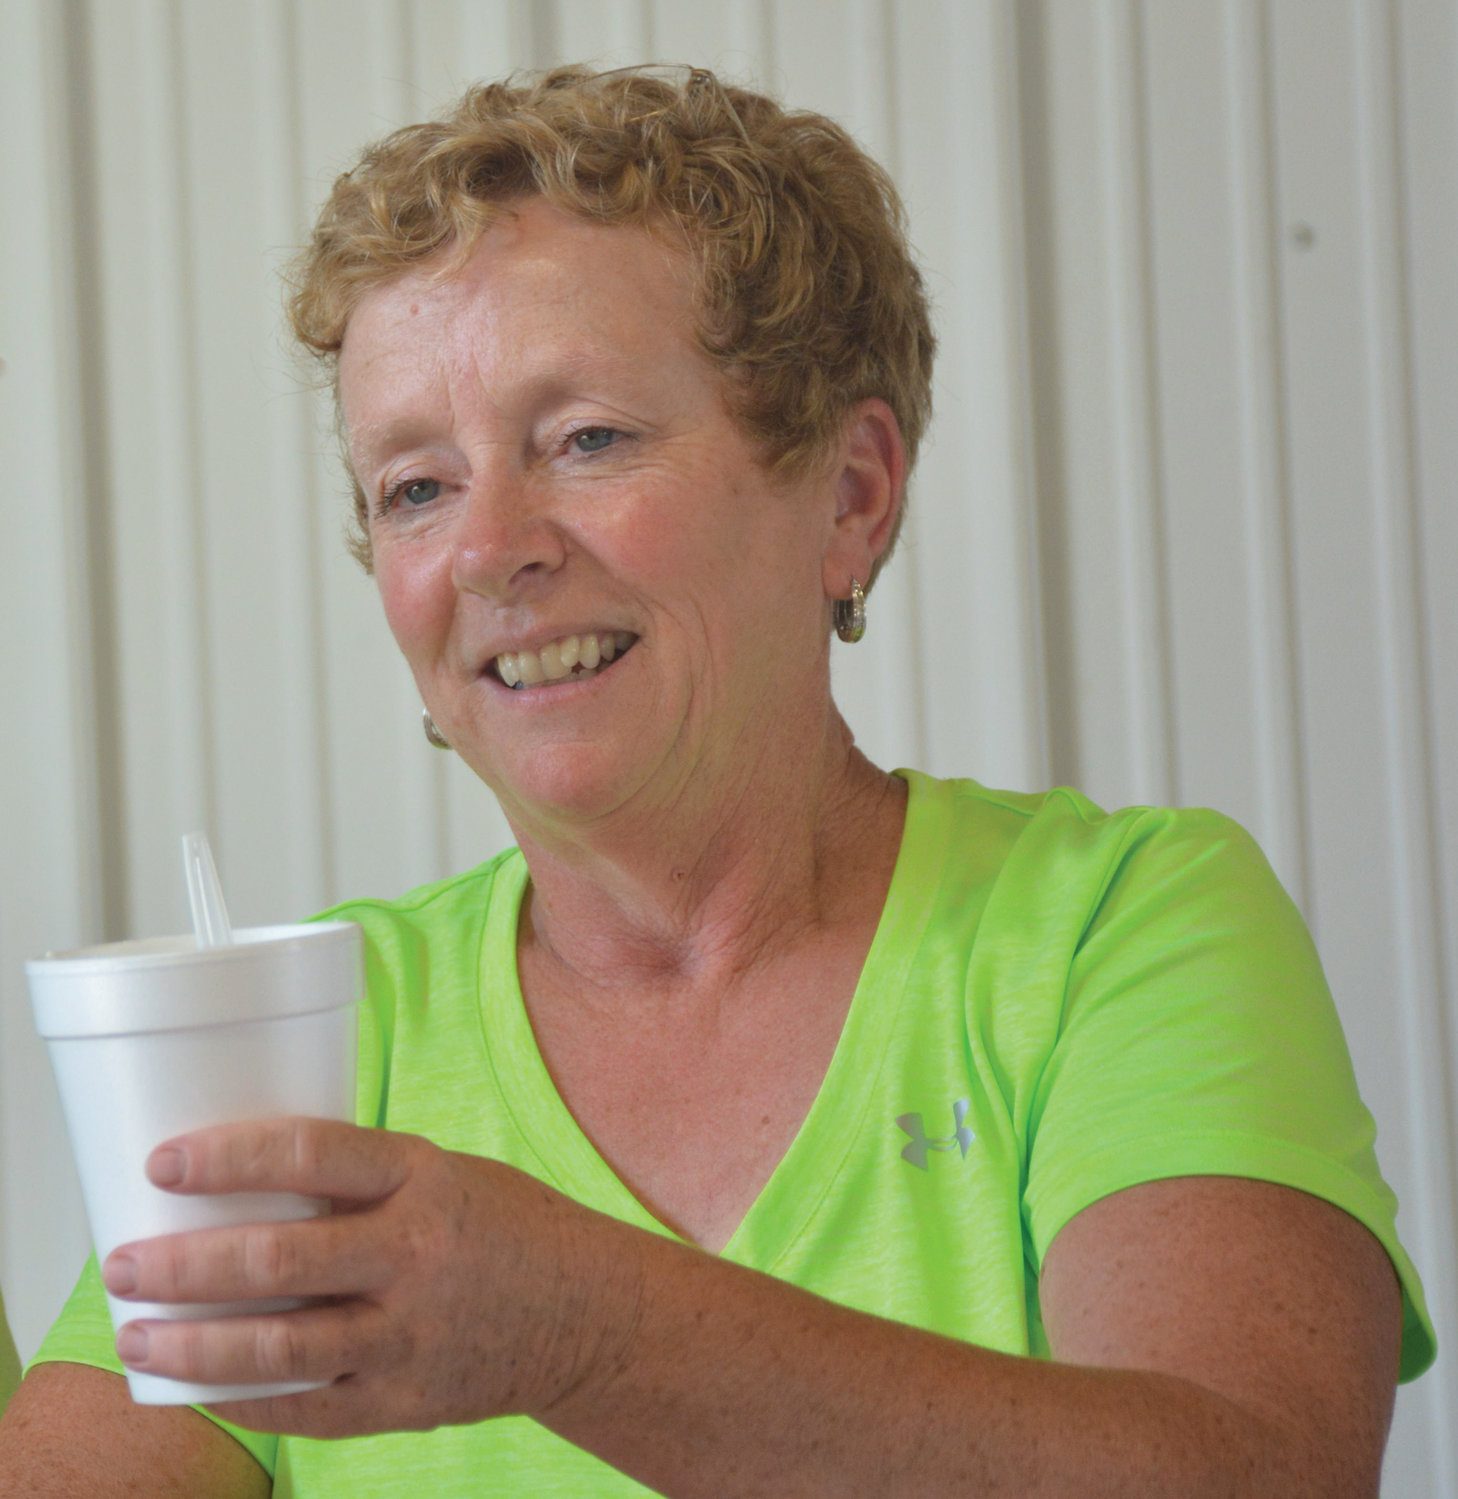 Linda Hart-Murphy serves her homemade goat's milk ice cream following the goat show at the 2016 4-H Fair.  Today is National Milk Day and humans have been keeping milk producing animals like goats, sheep, cattle, camels, donkeys and even horses since the late Stone Age.